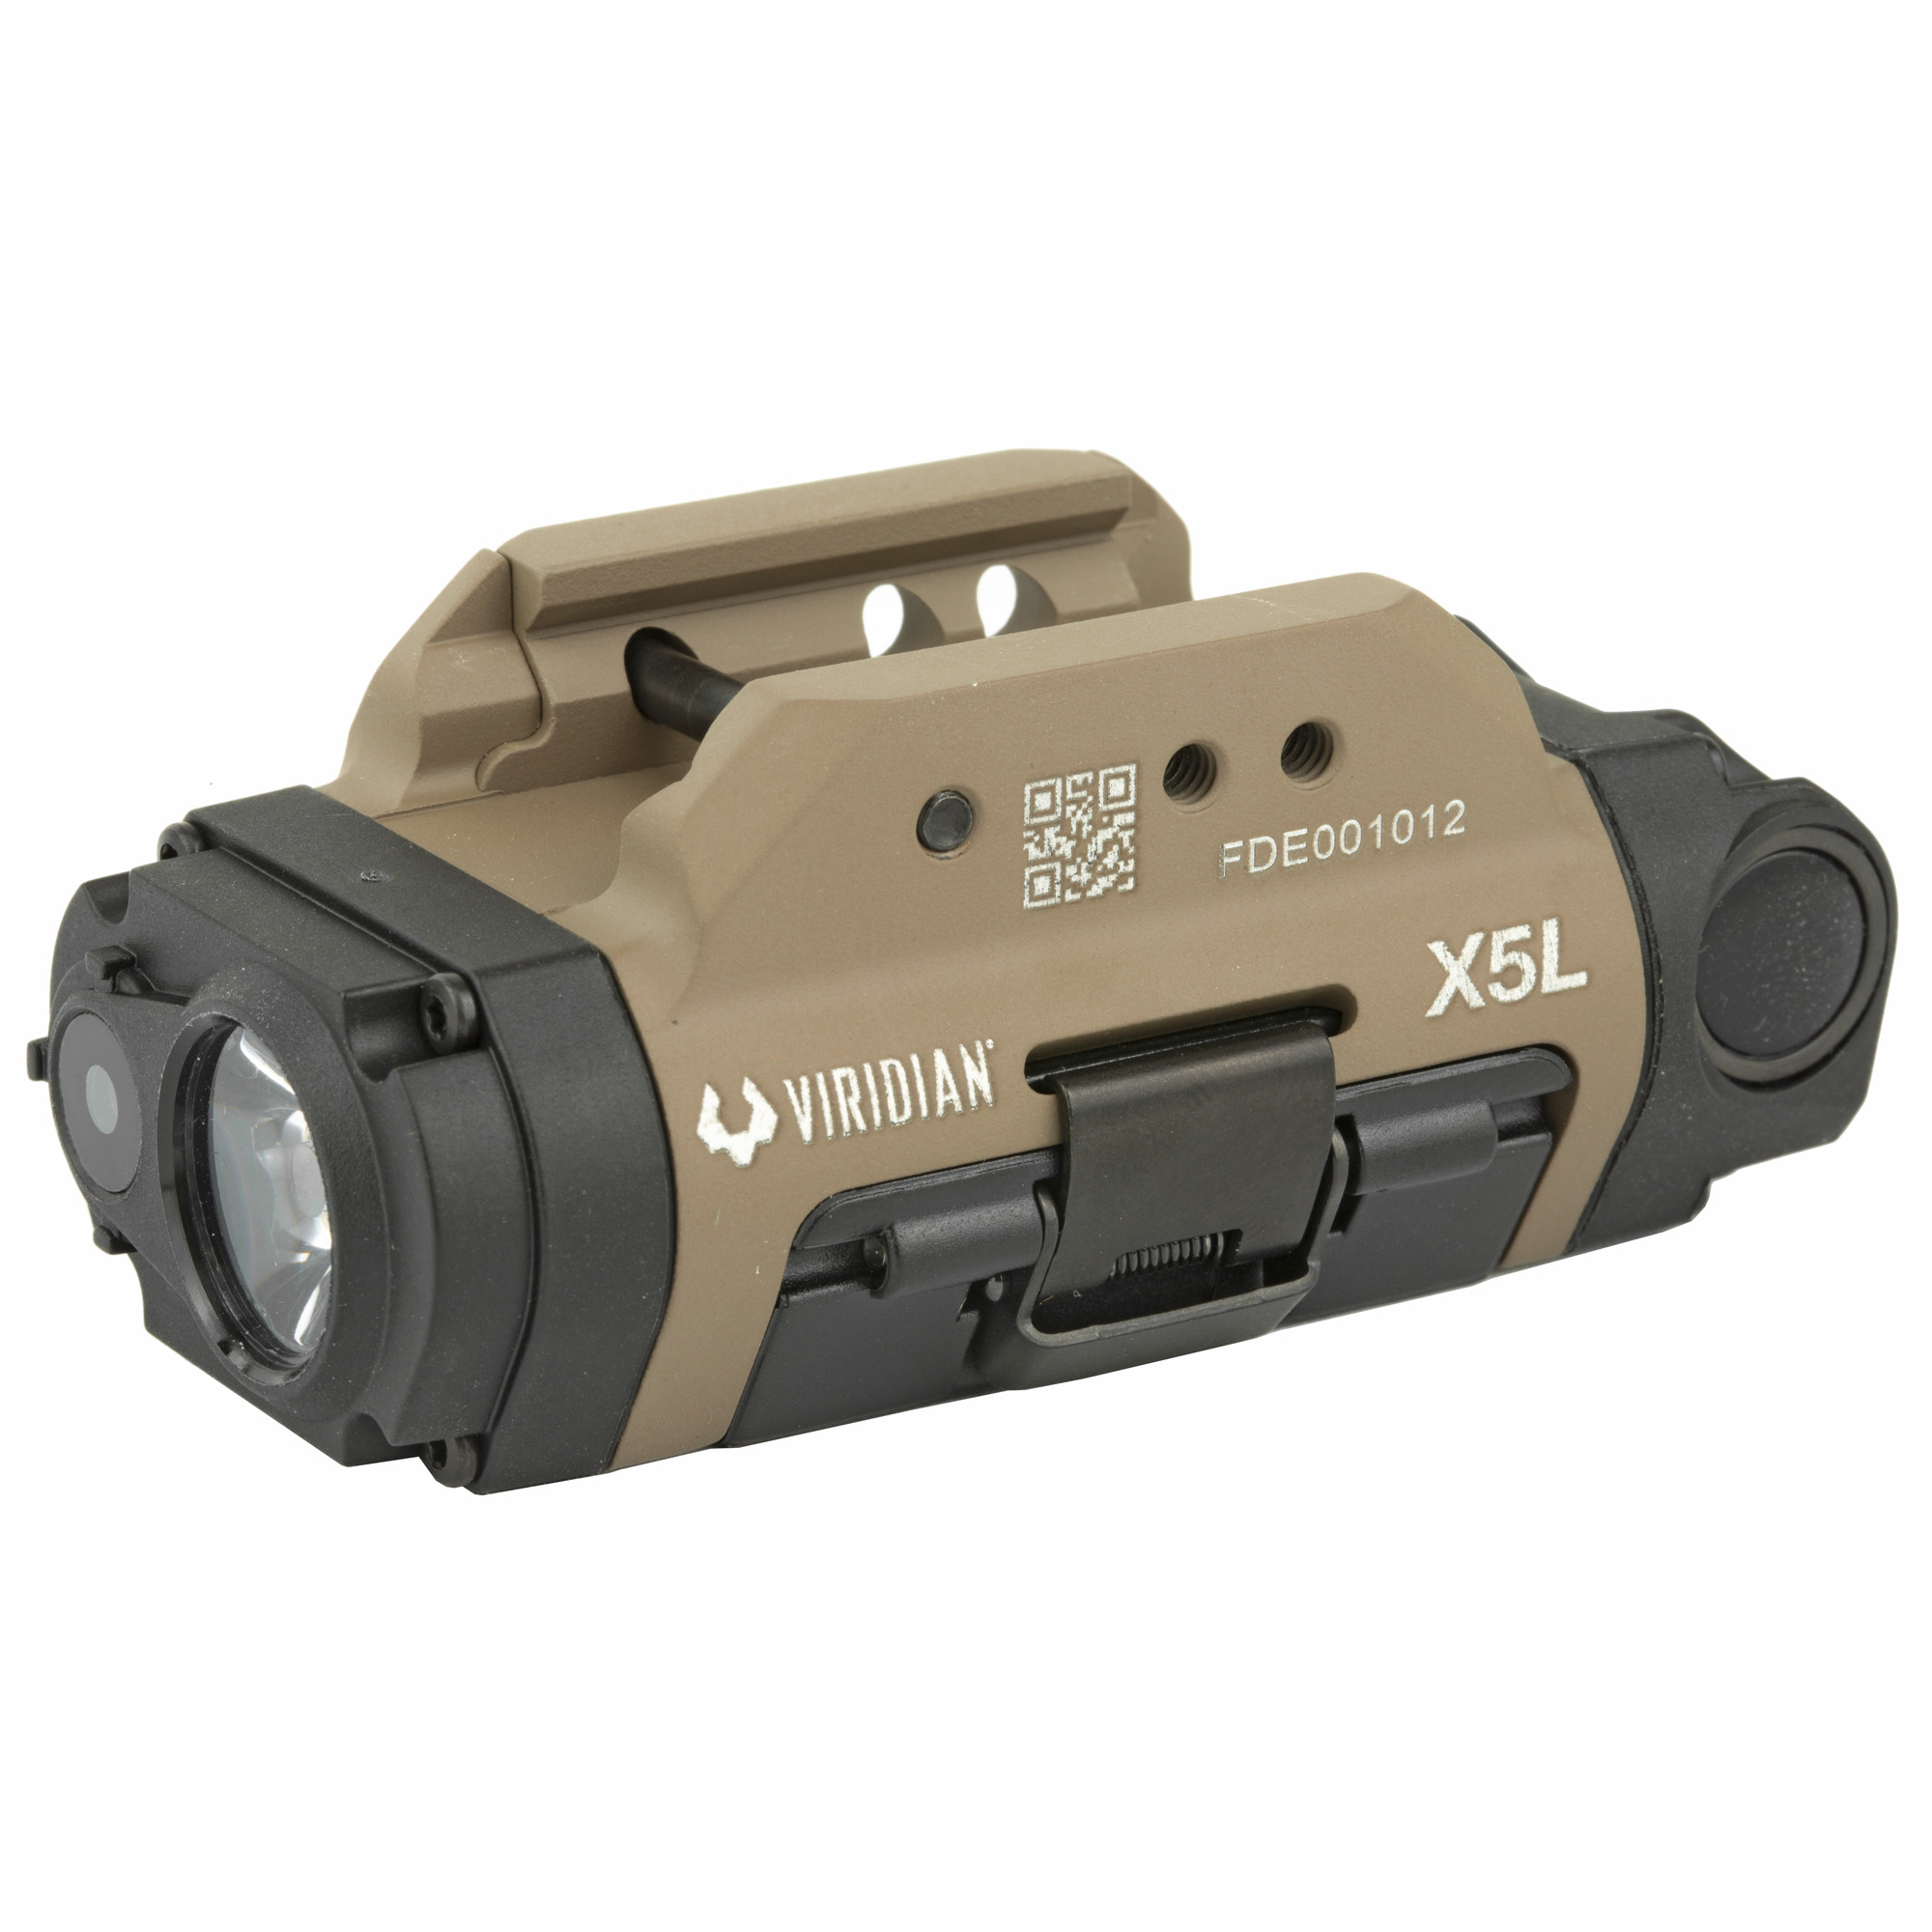 The new Viridian X5L Gen 3 is the latest version of the original green laser sight + tactical light combo. First launched in 2008 this family of products has continued to innovate through the years. The Gen 3 version is no exception. The X5L is the best and most technologically advanced weapon mounted accessory ever.